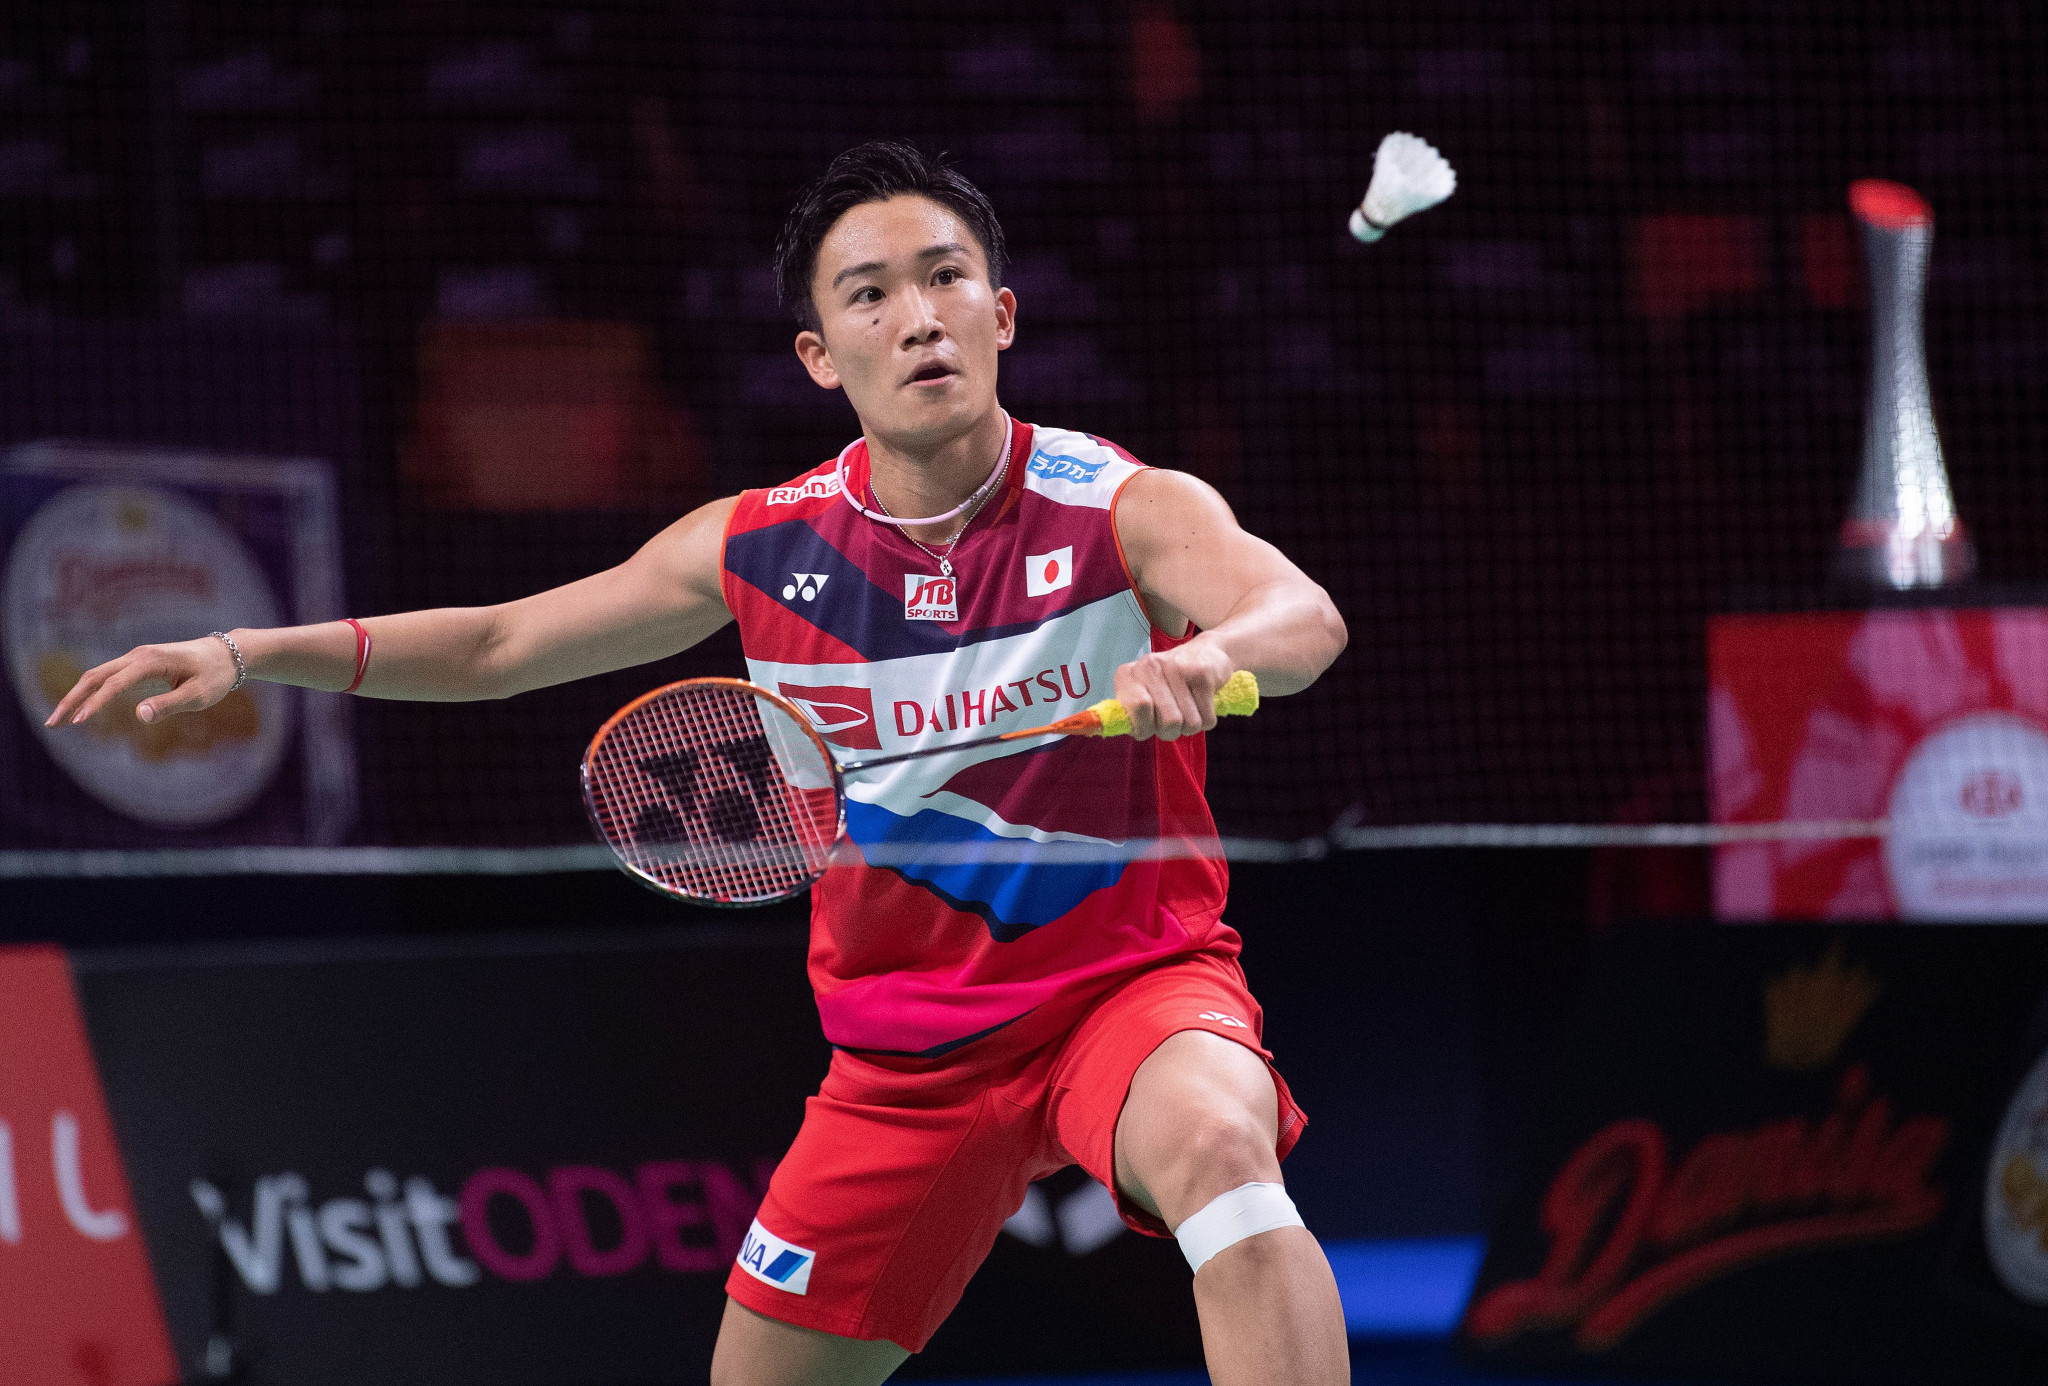 Kento Momota was in blistering form today at the BWF Denmark Open ©Getty Images